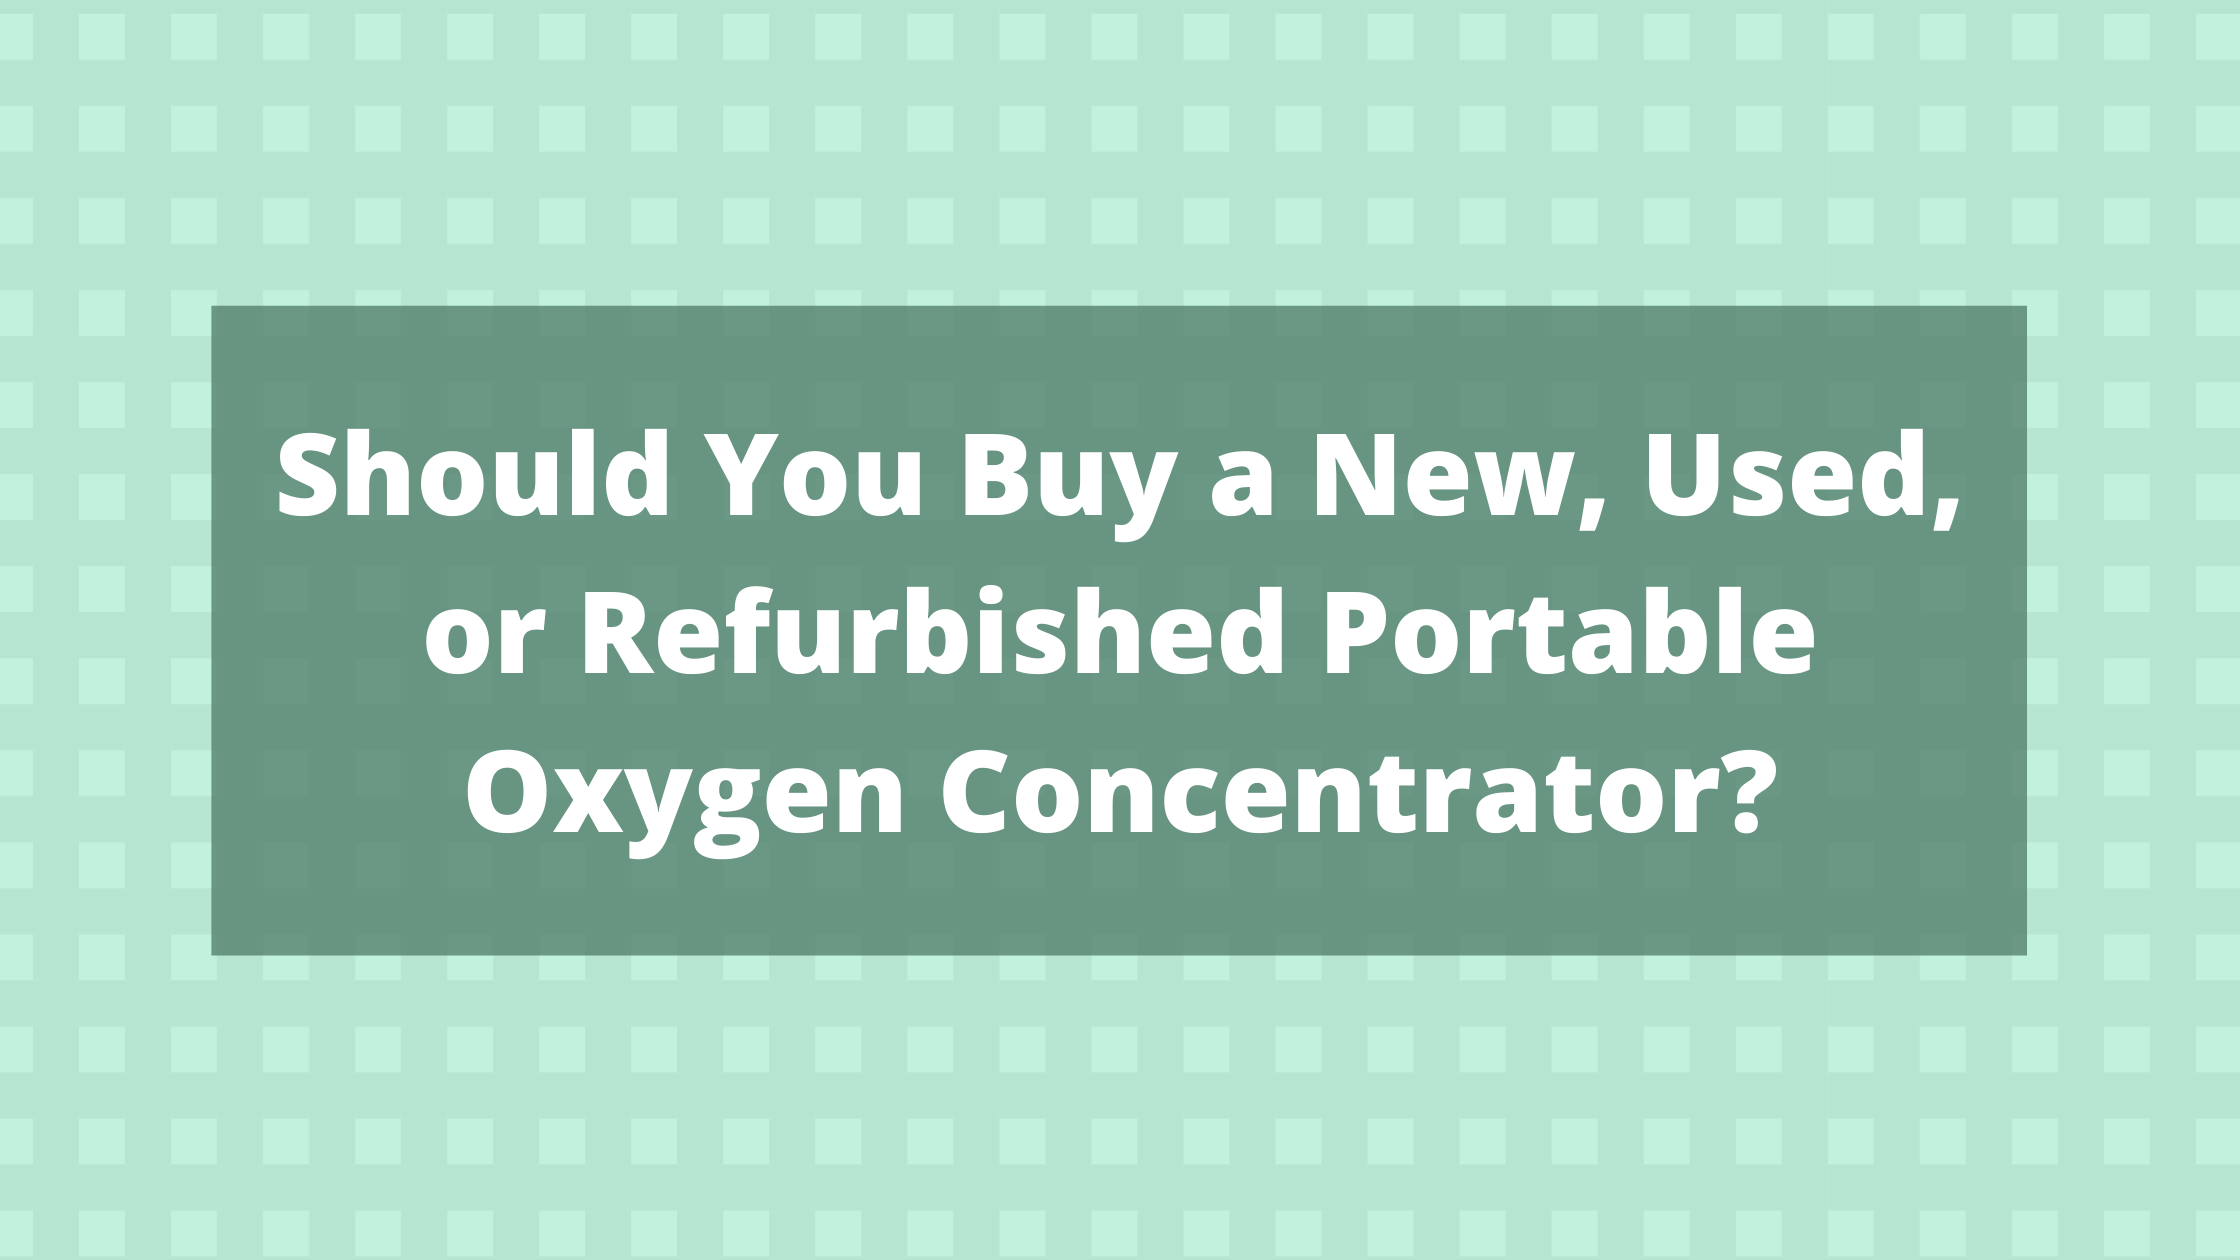 Should You Buy a New, Used, or Refurbished Portable Oxygen Concentrator?